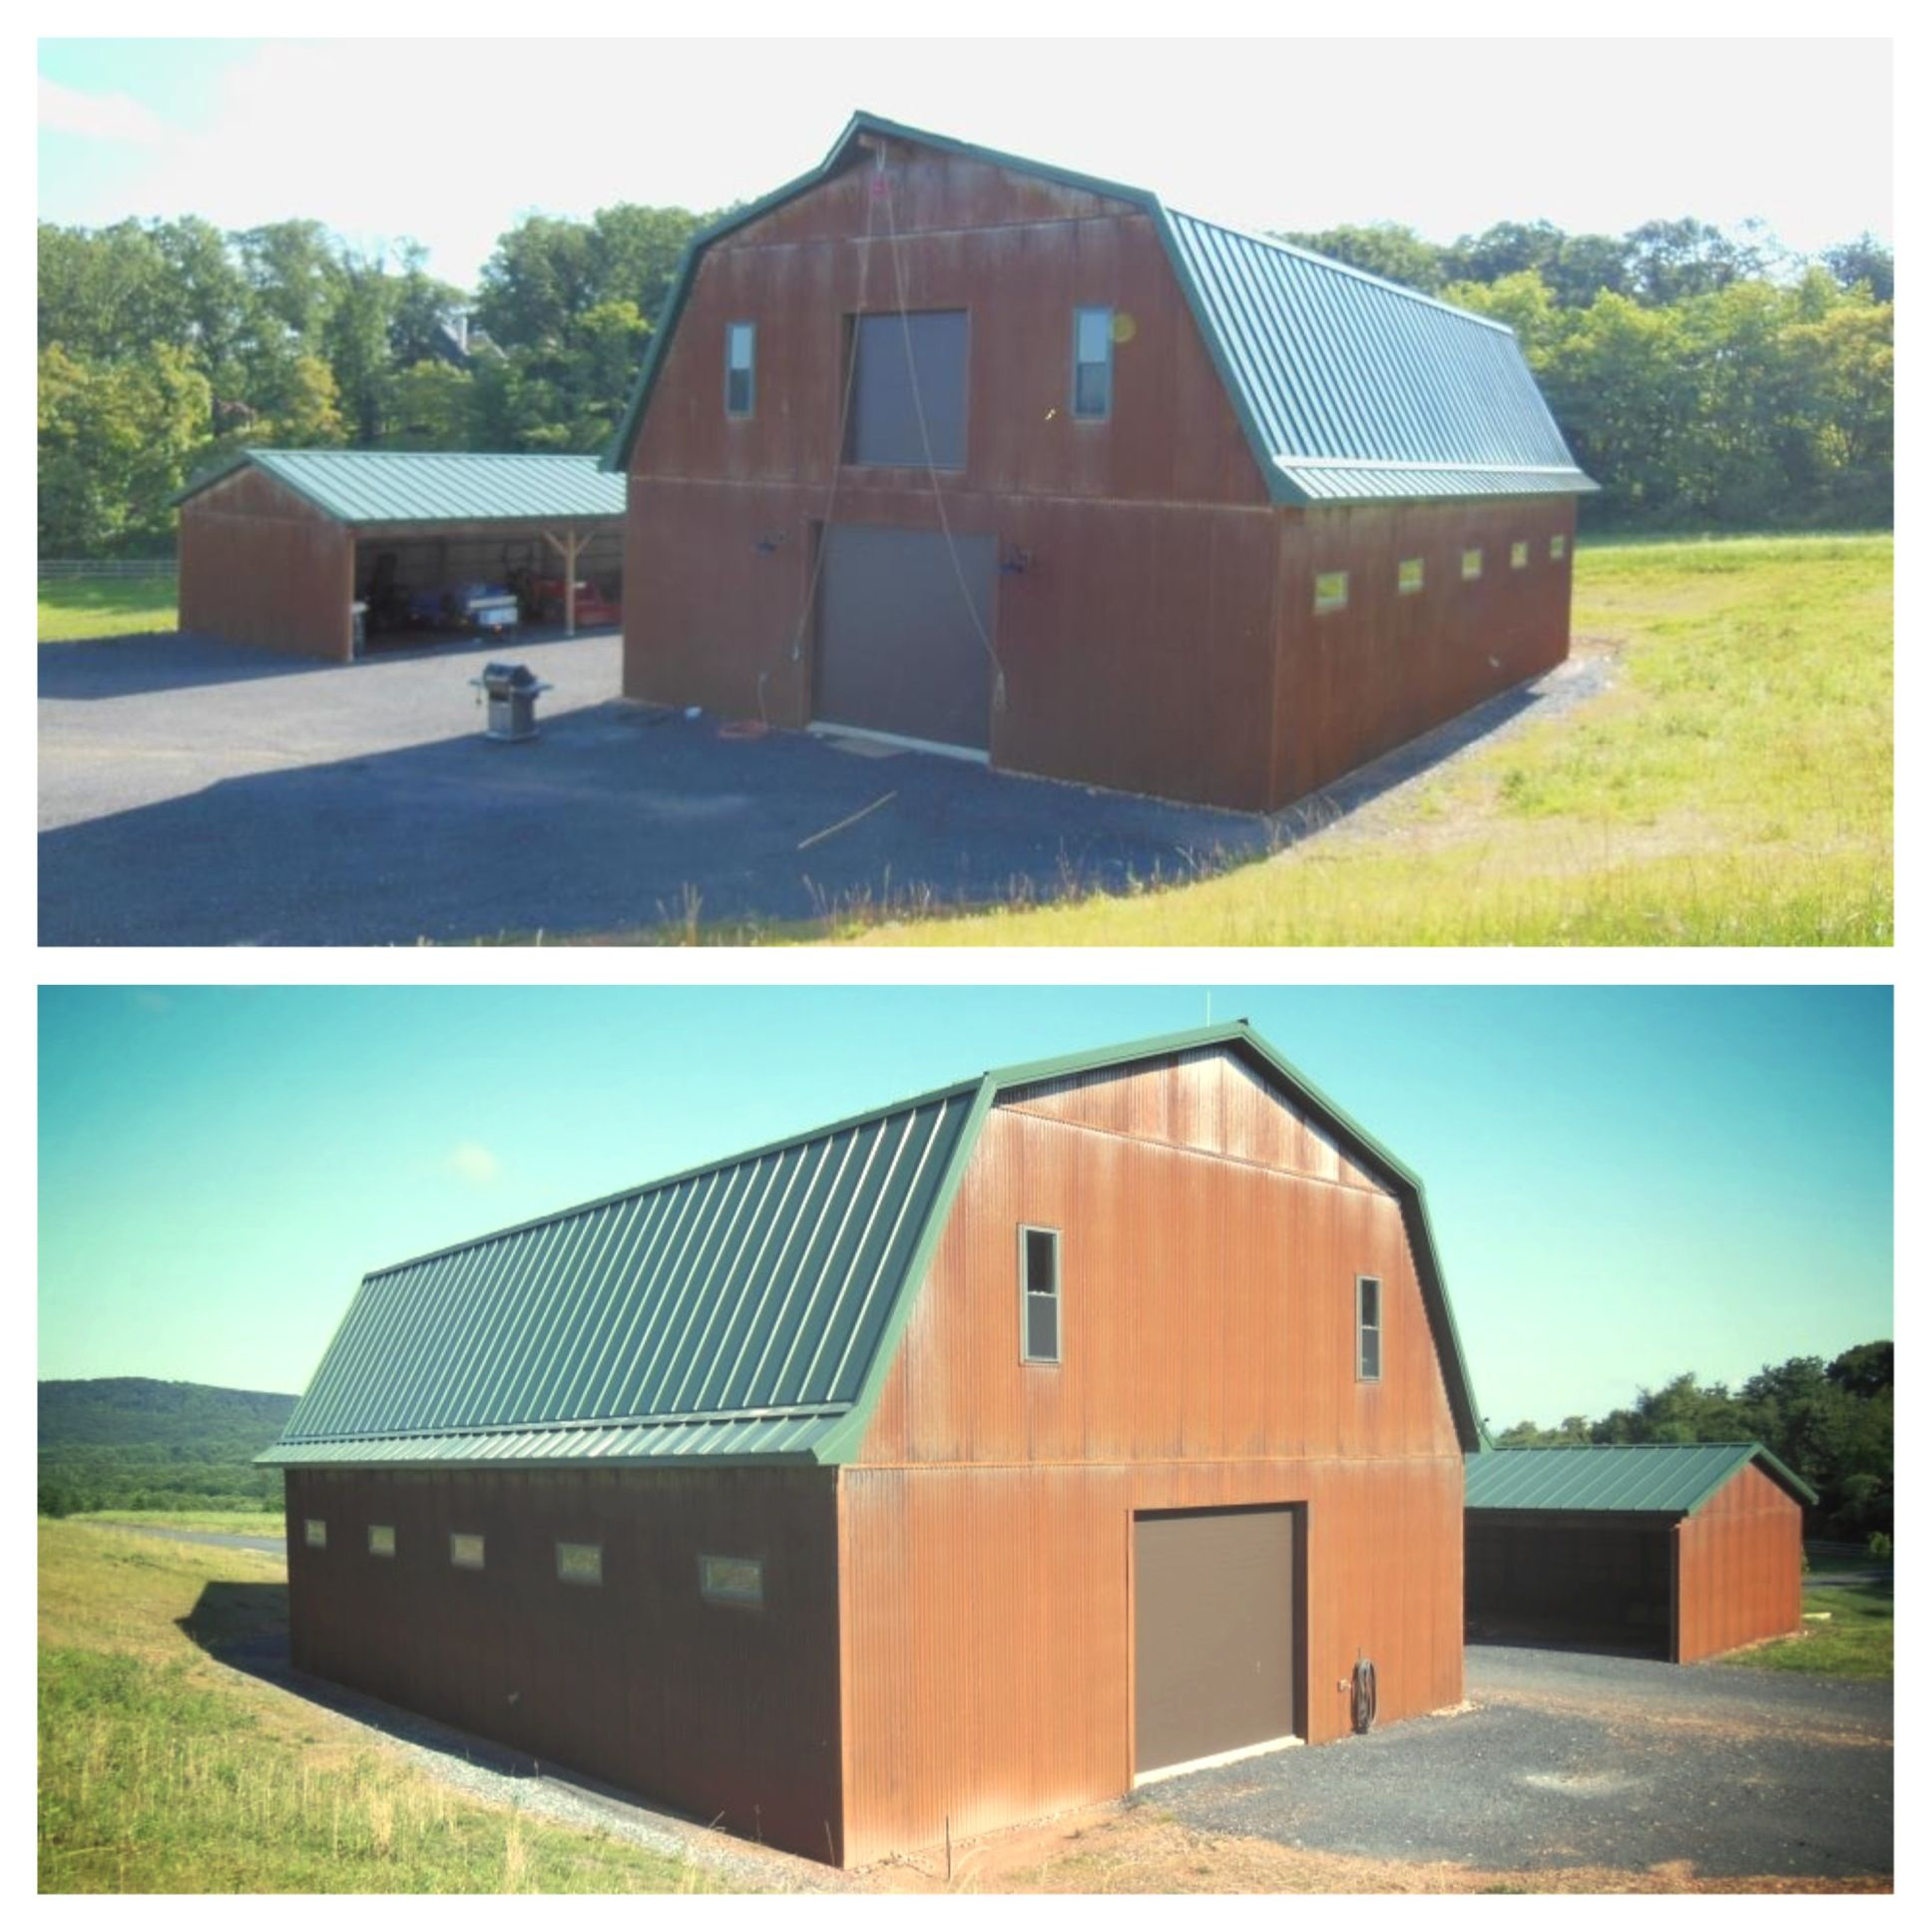 2 Story Barn With Classic Green Metal Roof And Rustic Corrugated Metal Siding Corrugated Metal Siding Metal Siding Metal Roof